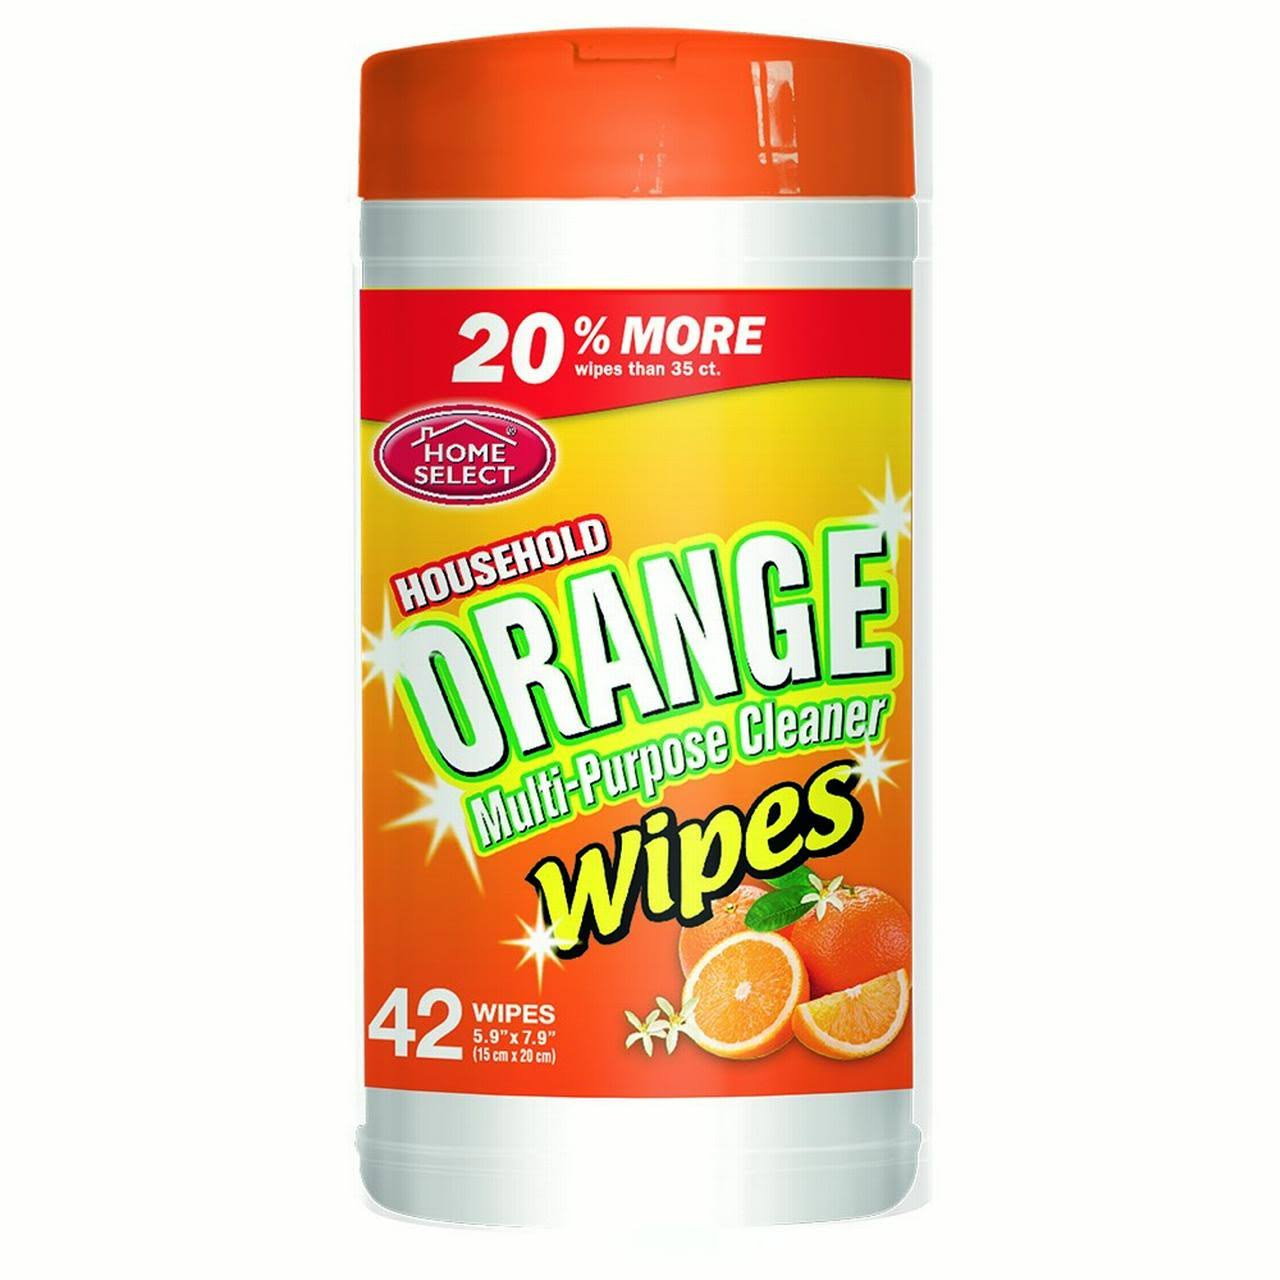 Home Select Multi-Purpose Wipes - Orange, 35ct